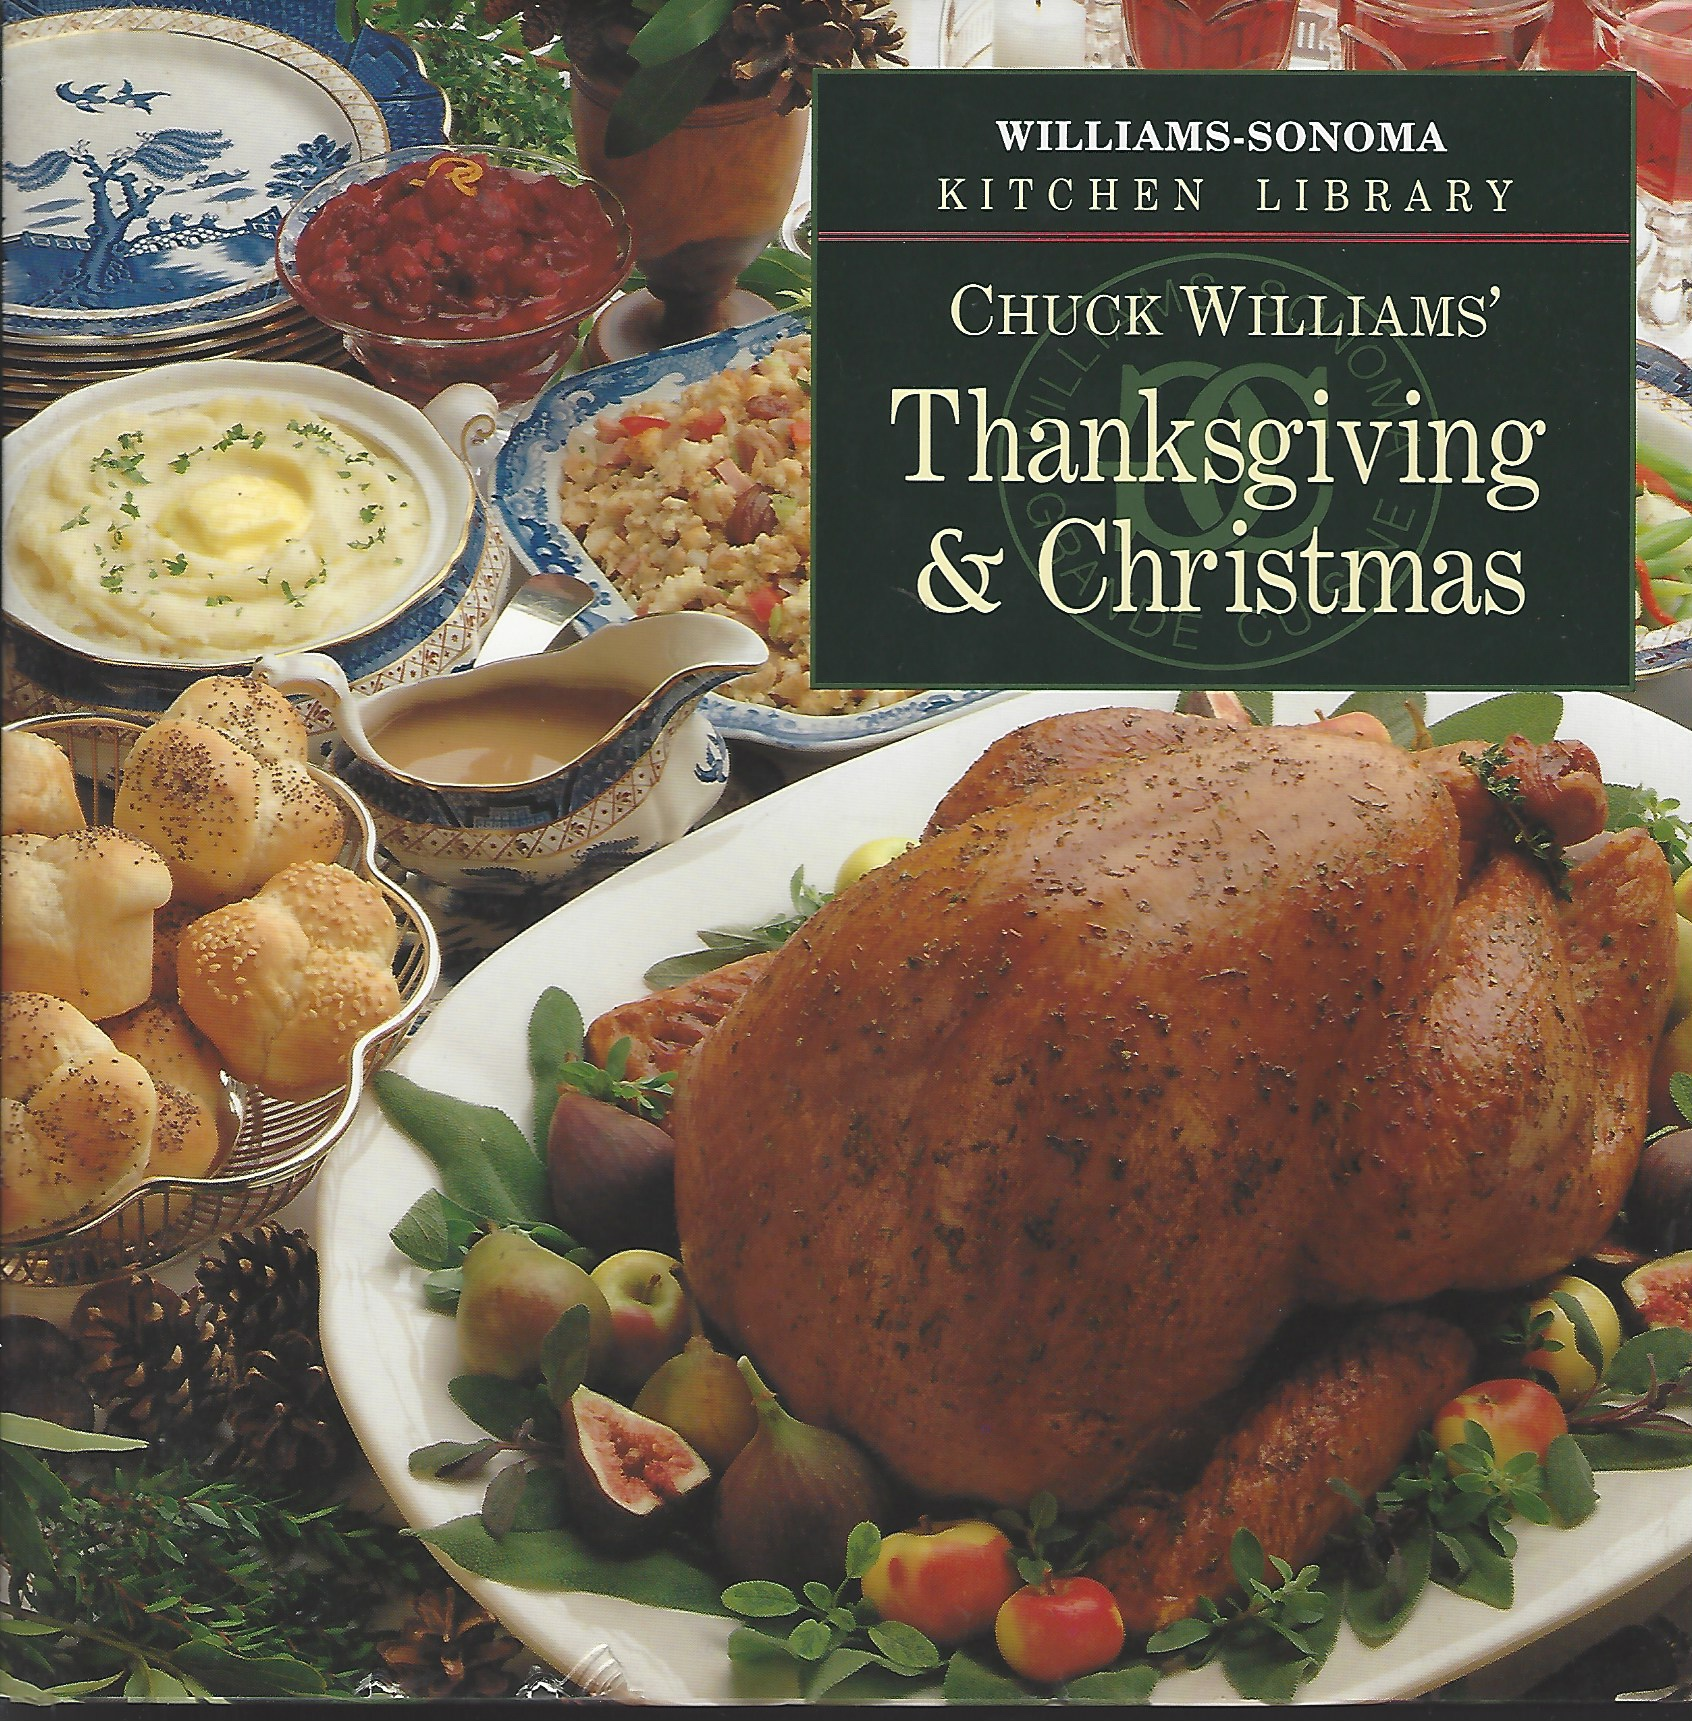 Image for CHUCK WILLIAMS' THANKSGIVING & CHRISTMAS